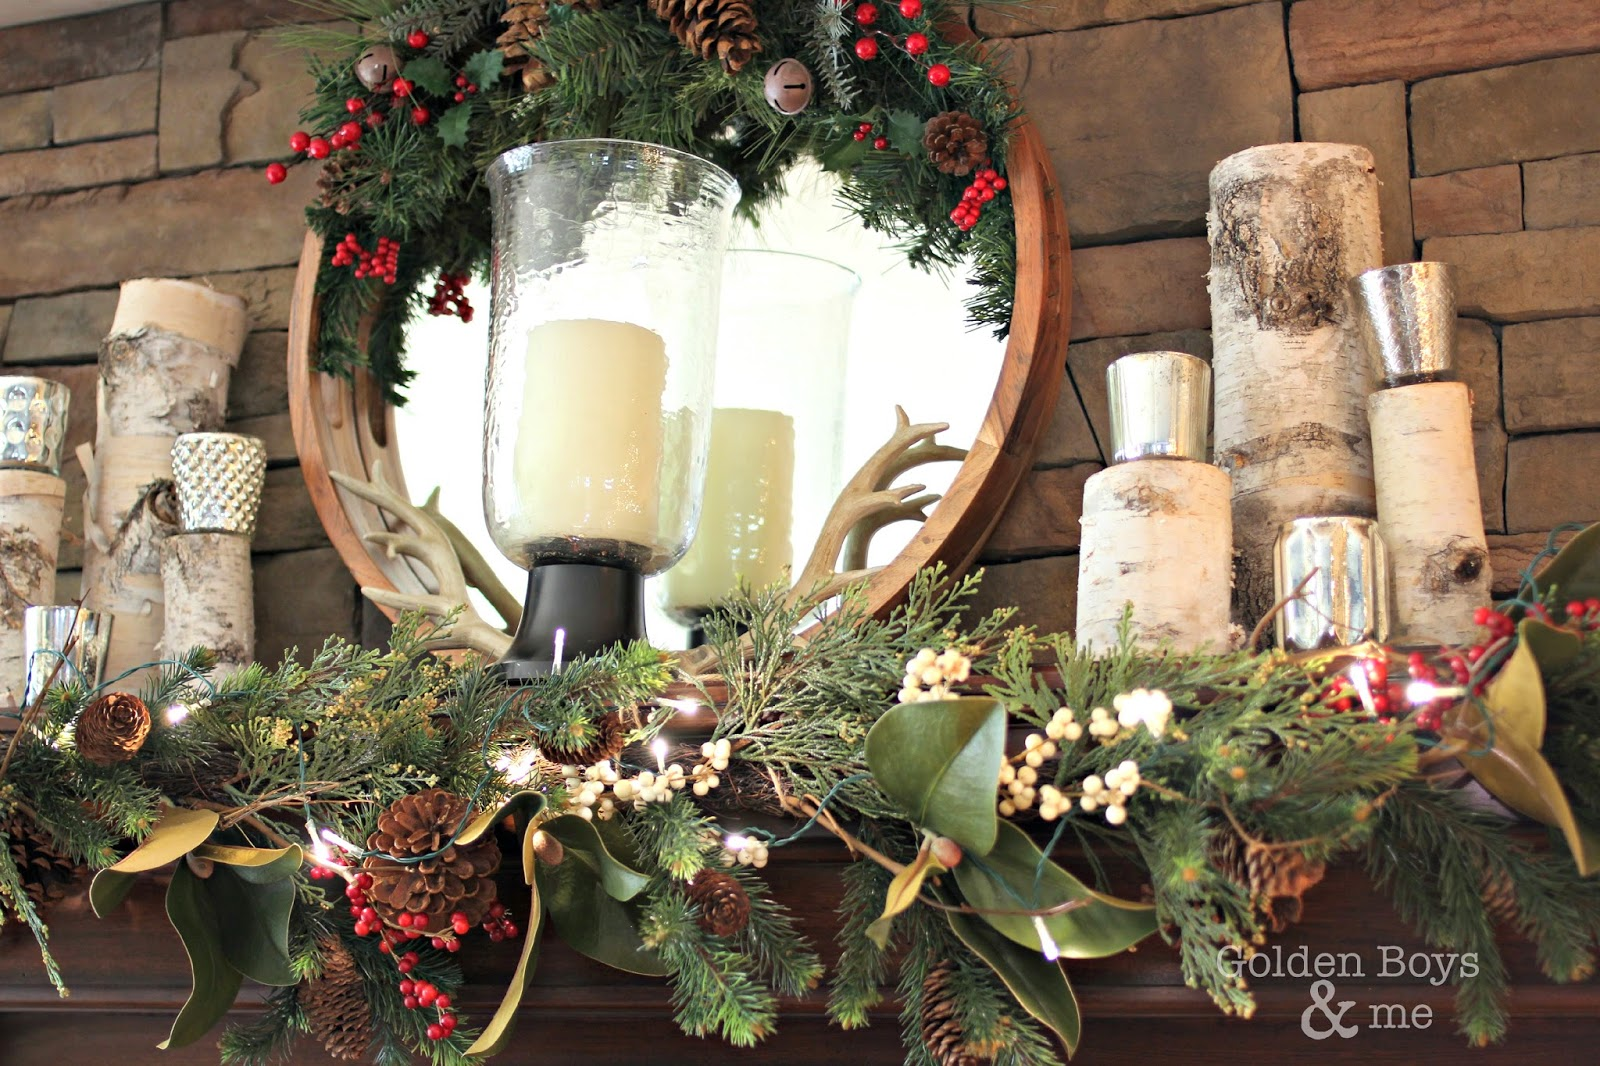 Pottery Barn magnolia and berry garland with mercury glass votives and mirror in Christmas family room-www.goldenboysandme.com